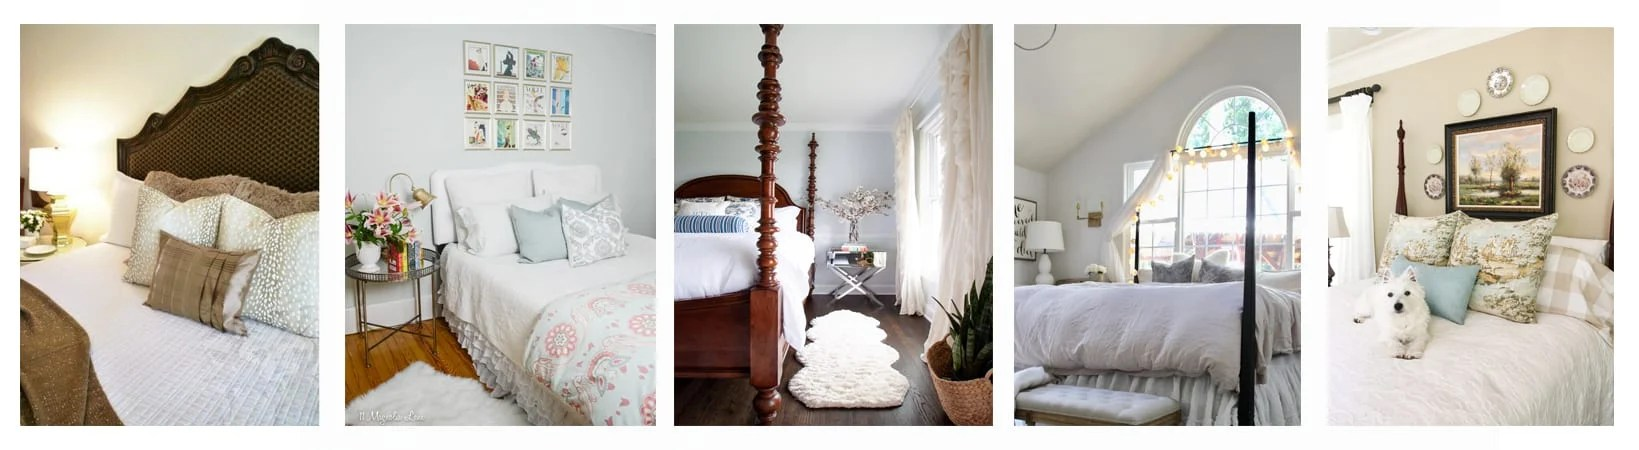 Wednesday beautiful bedrooms tour